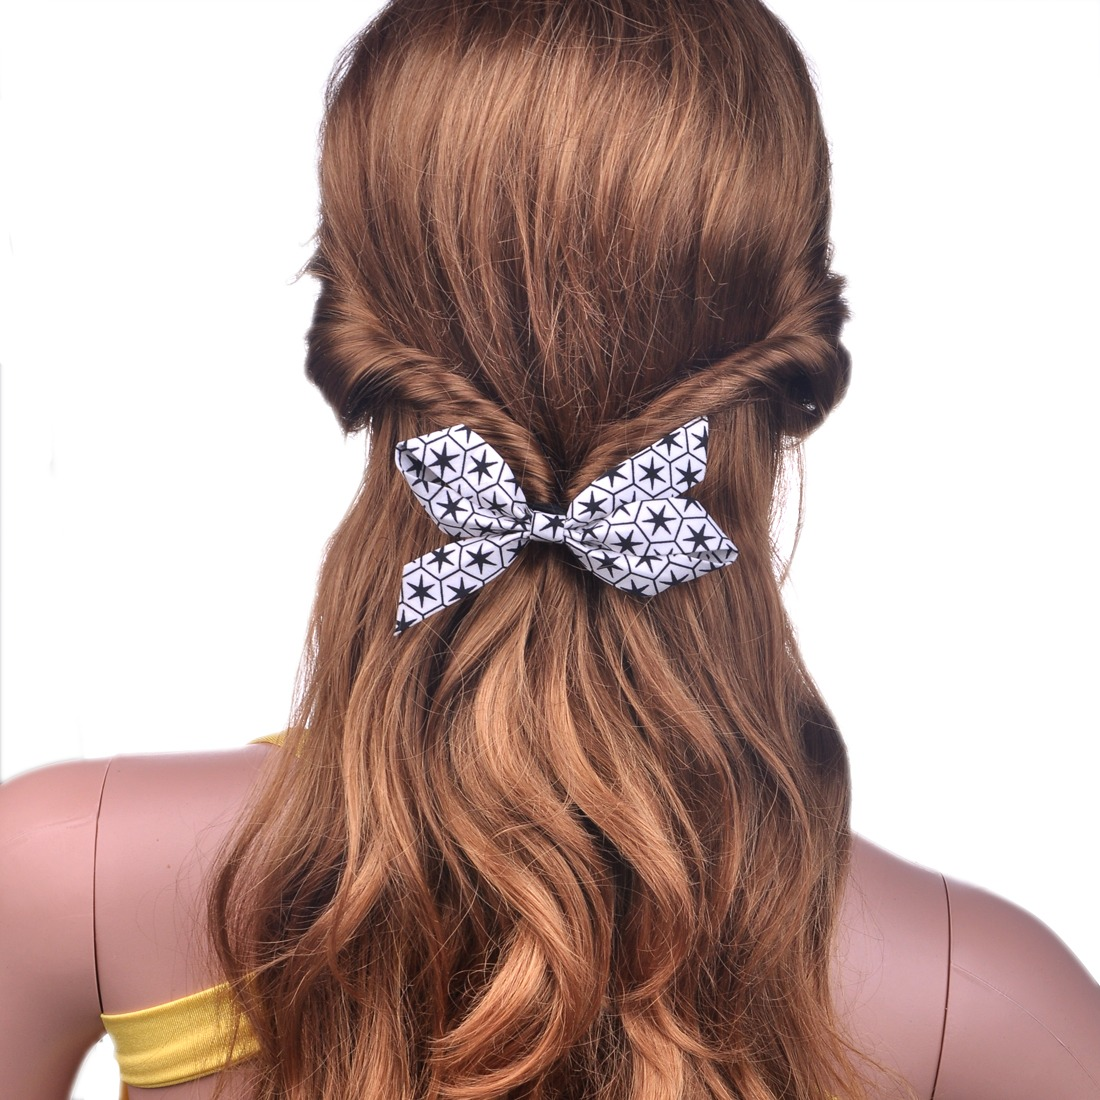 Stary Night Stars Bow Bowknot Scrunchie Ponytail Holder For Girls For Thick Hair